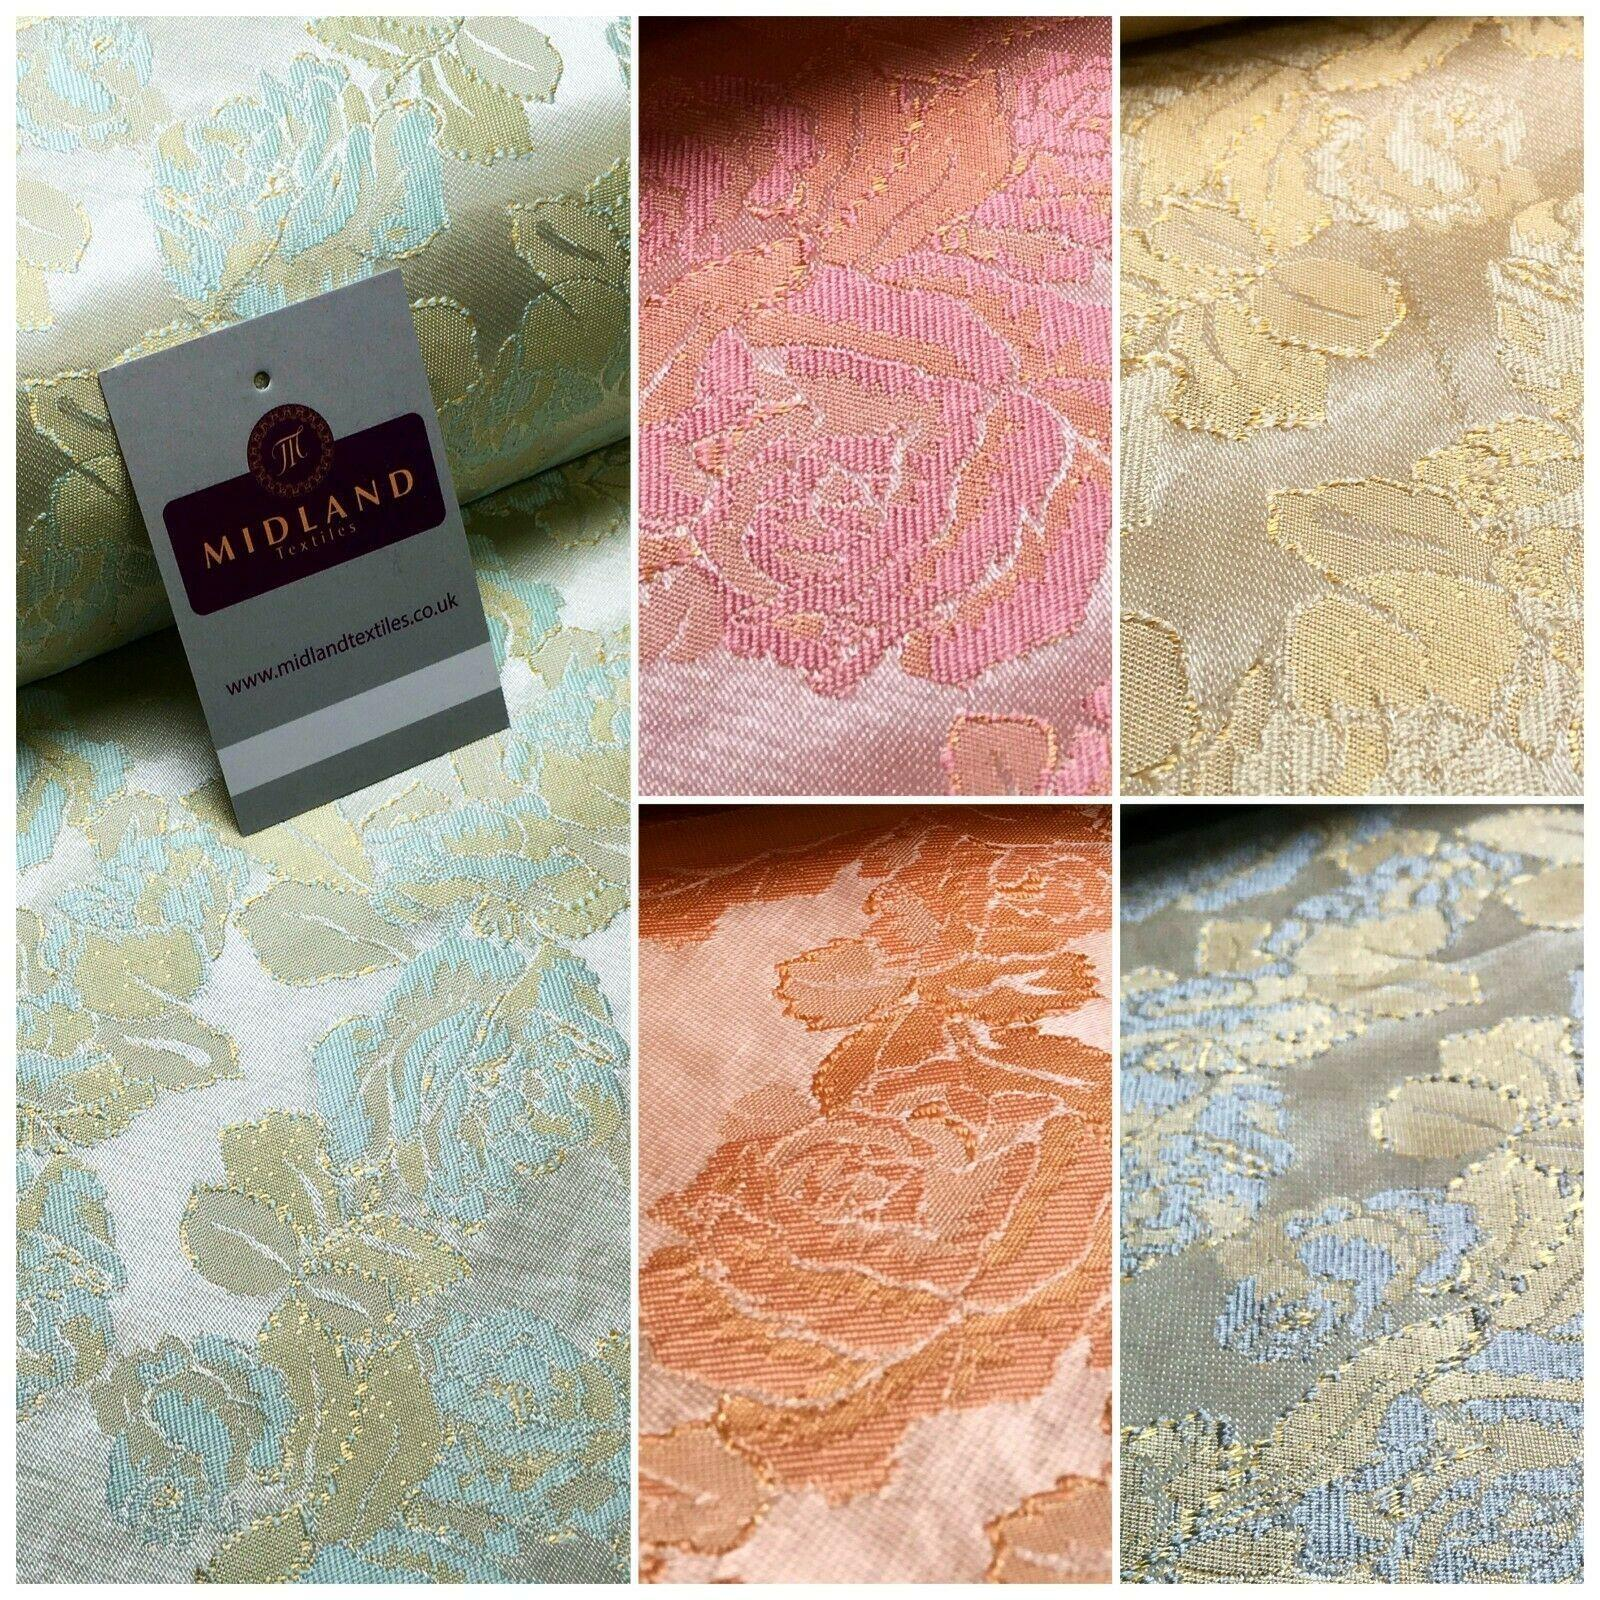 Floral Firm Pastel Jacquard Indian Faux Silk Banarsi brocade Fabric 150cm MA1239